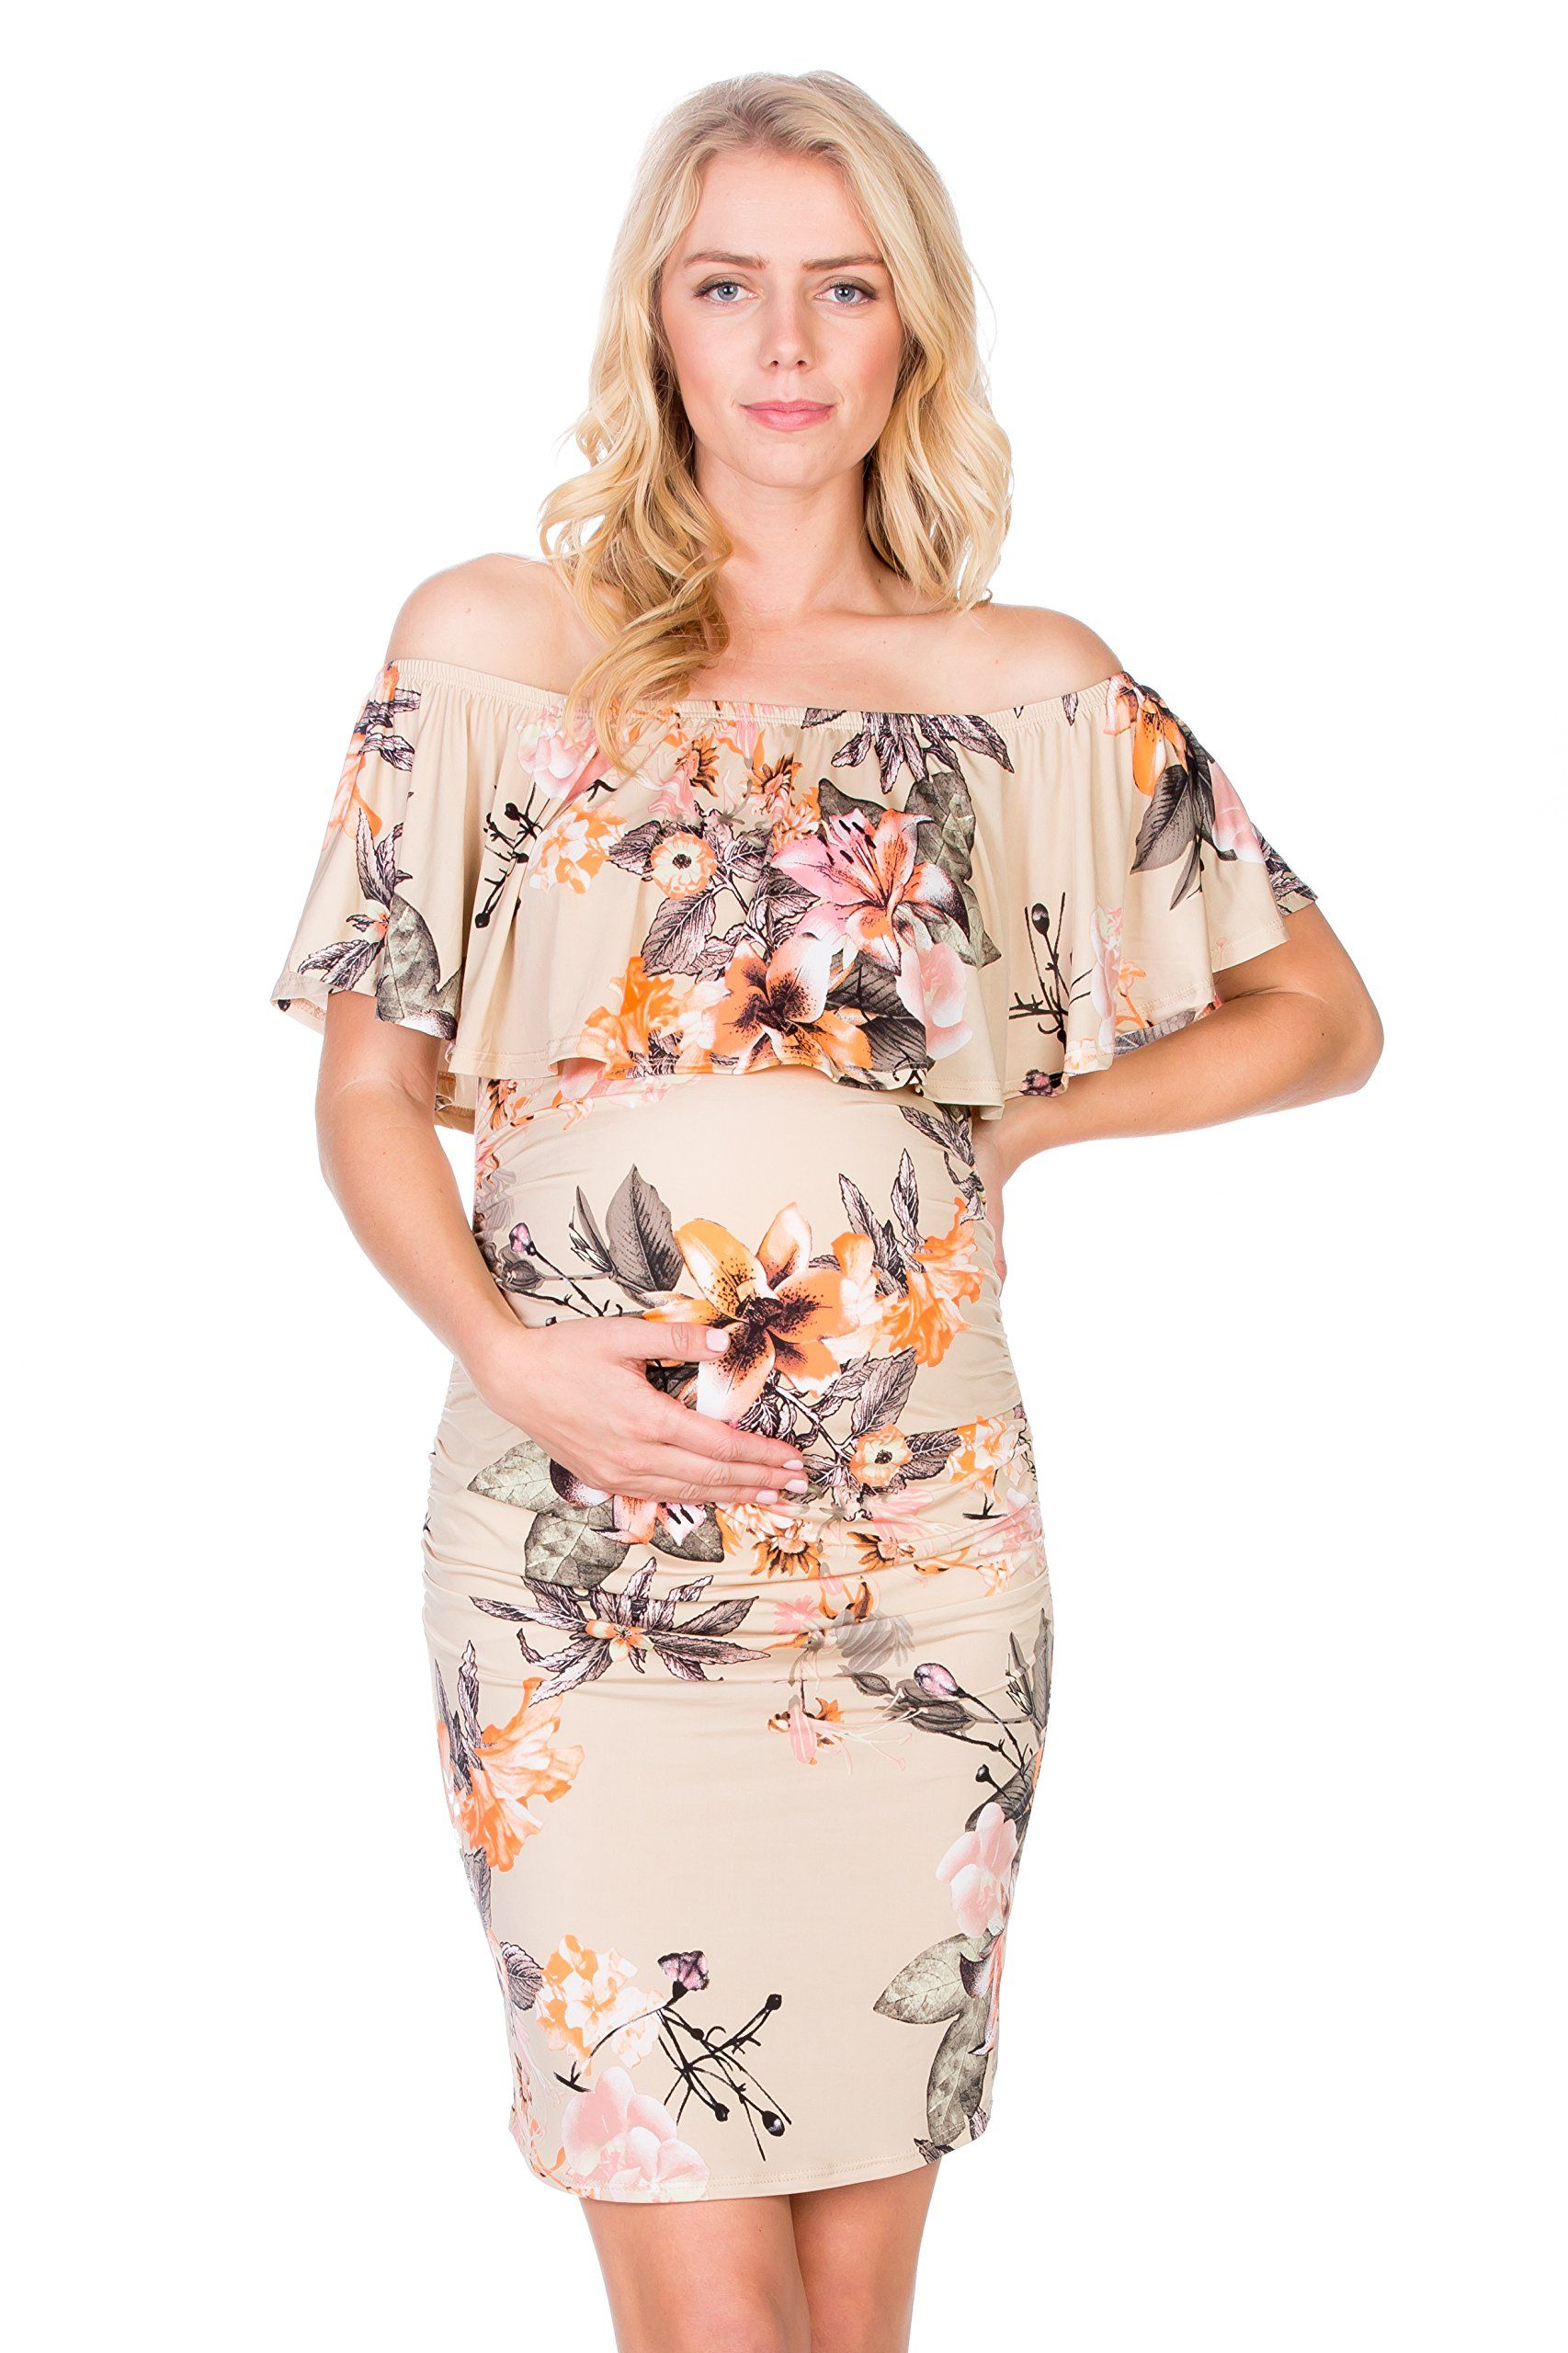 f04c2a6bf641 Maternity Dresses - My Bump Womens Floral Ruffle Off Shoulder Maternity  DressMade in USA Large Sand Pink Flower     Want additional info  Click the  picture.